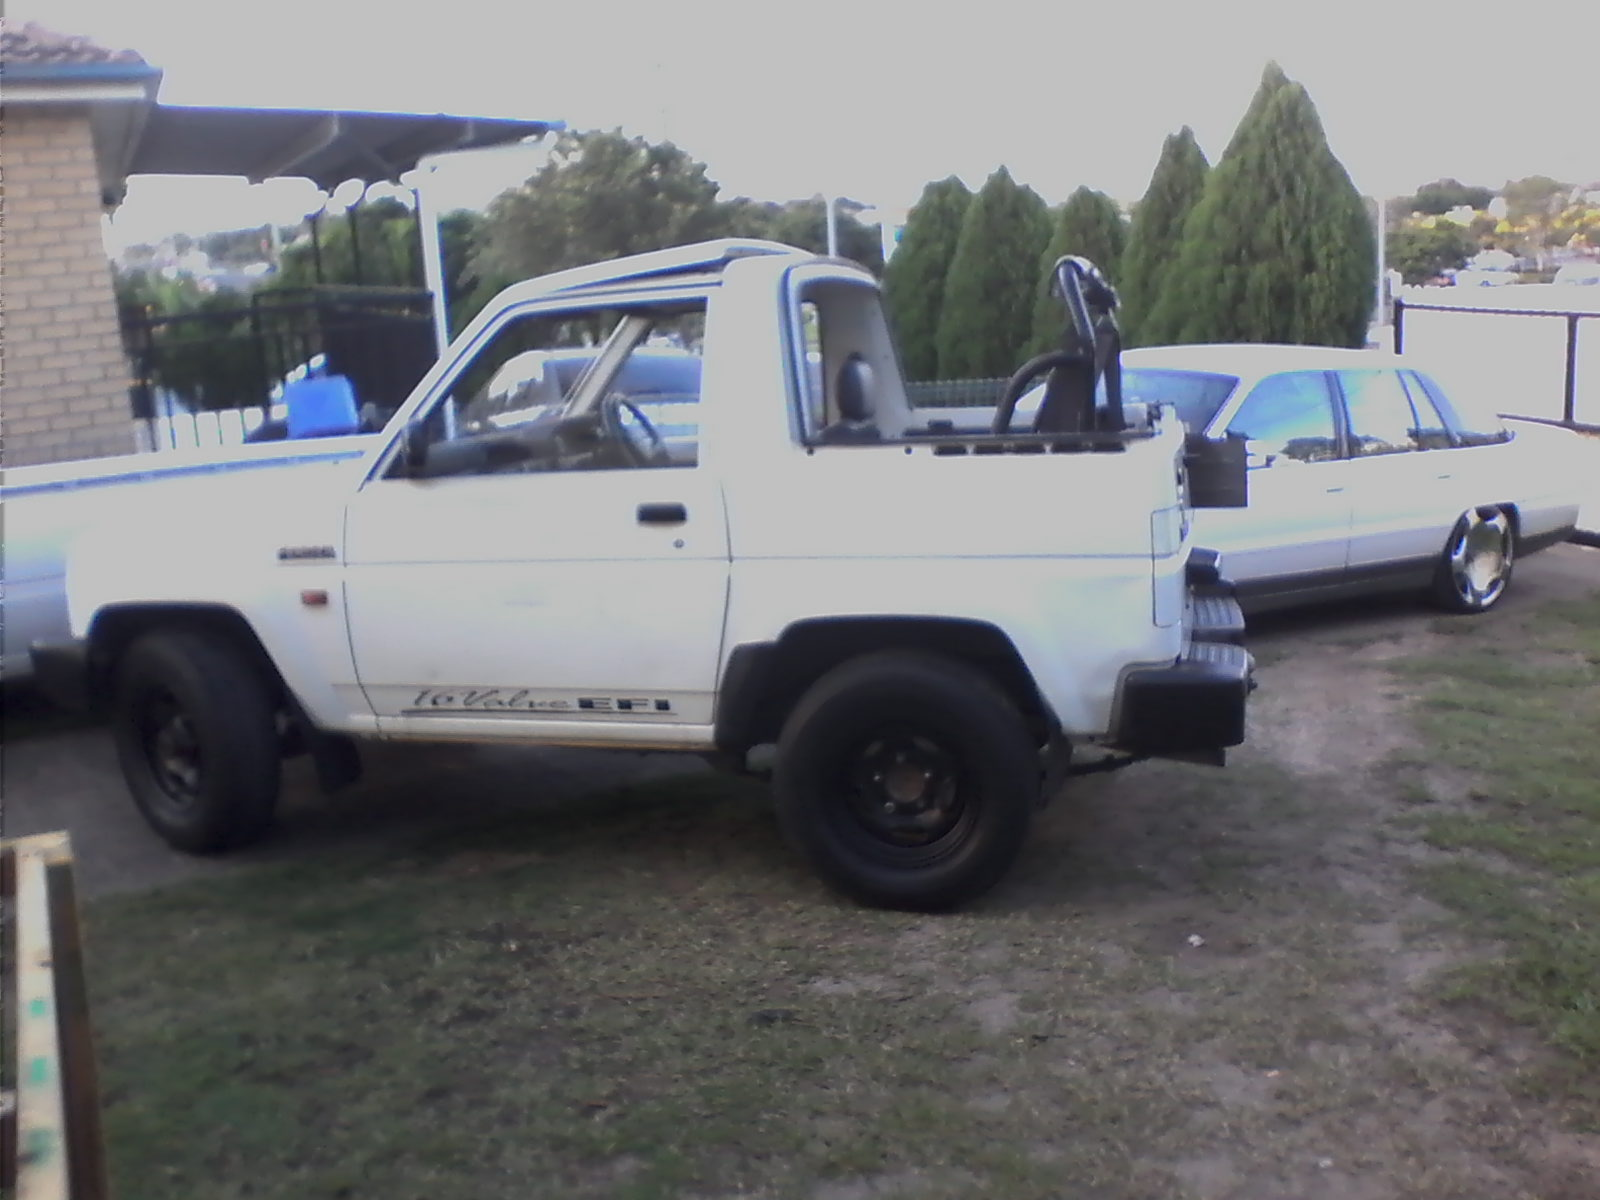 1994 daihatsu feroza 4x4 convertible for sale or swap qld brisbane 2218163. Black Bedroom Furniture Sets. Home Design Ideas